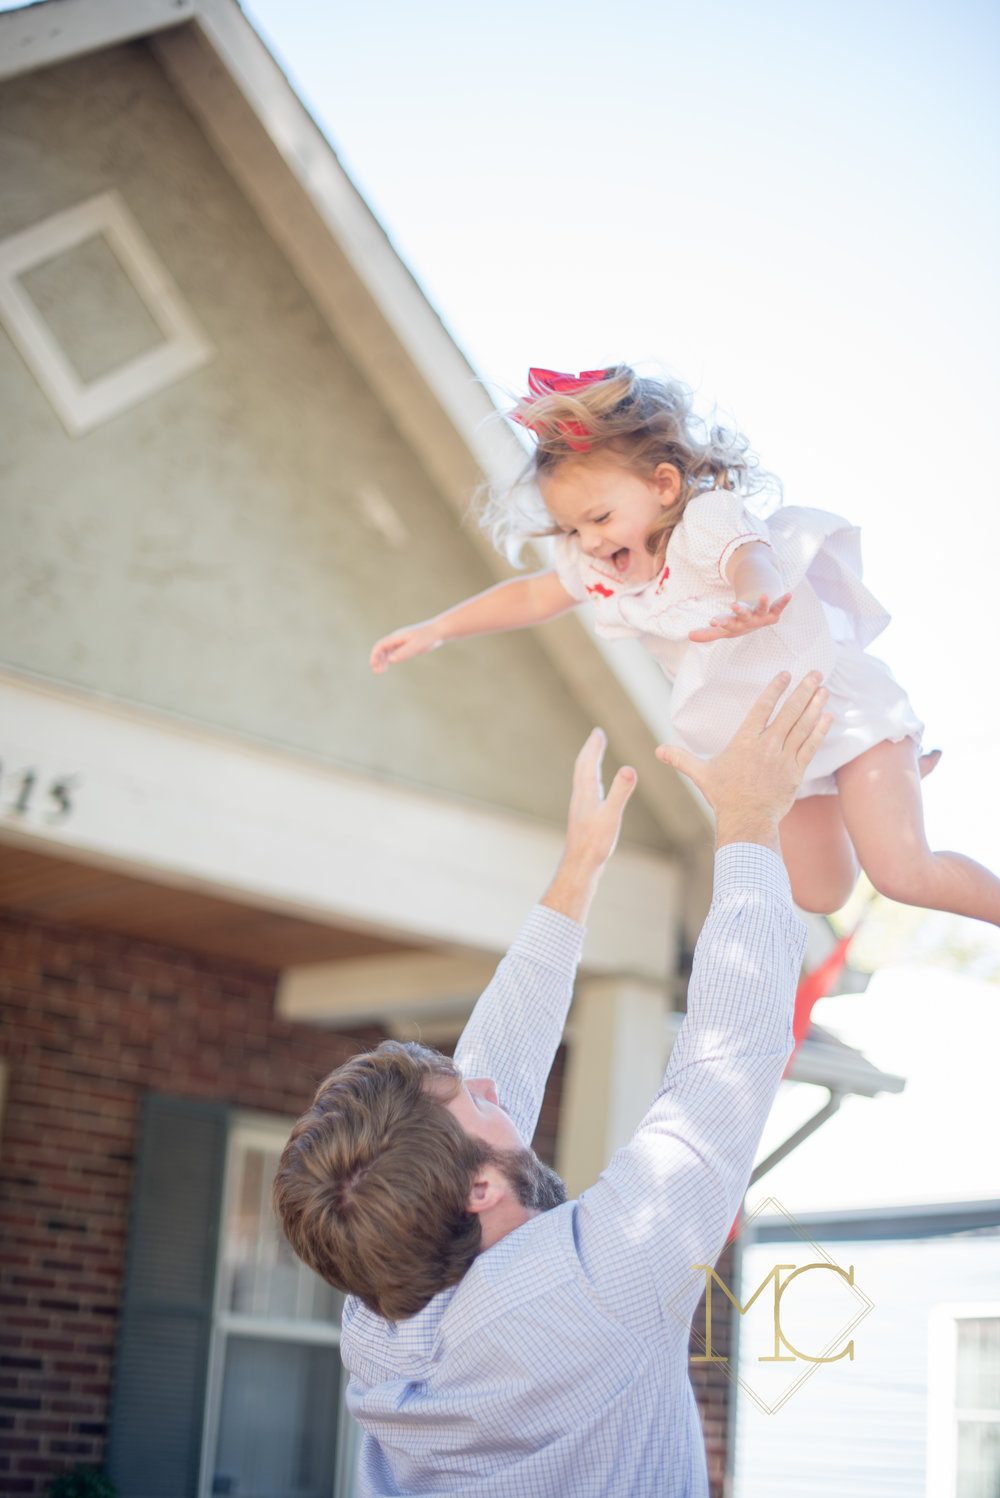 image from nashville family lifestyle photo session of dad throwing toddler in the air